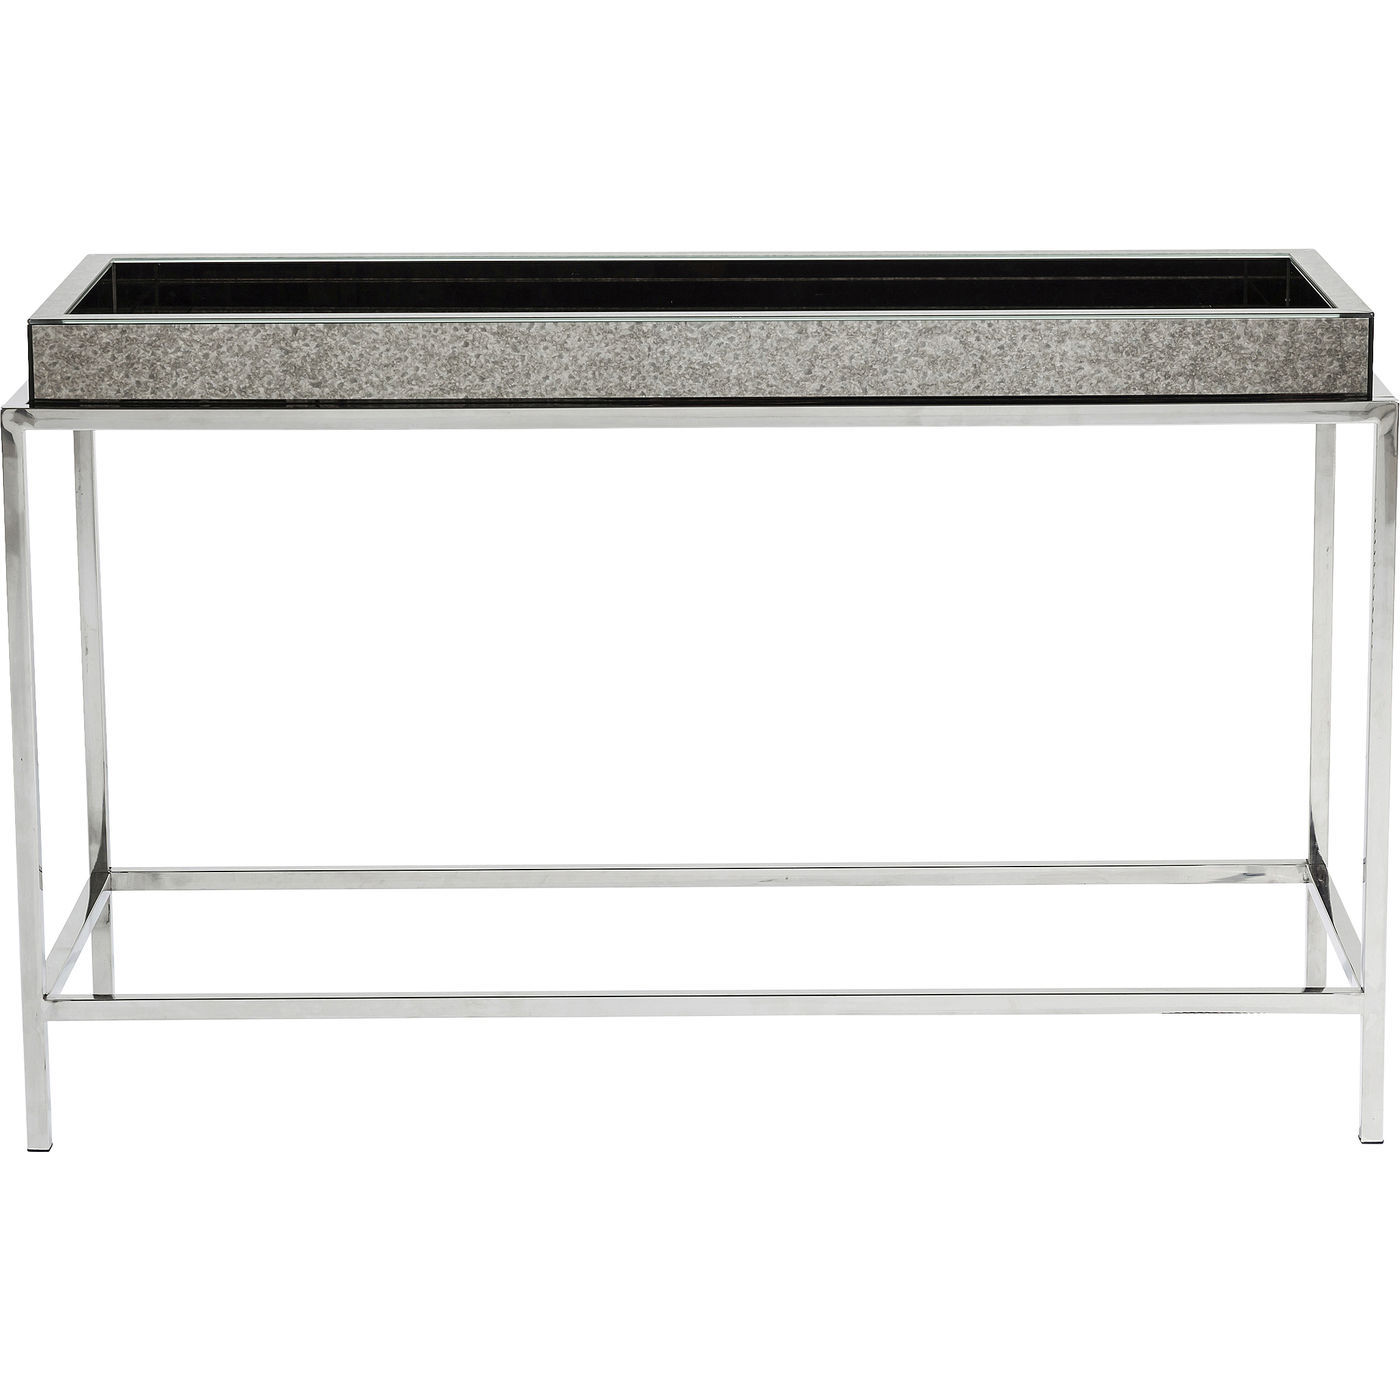 Consolle moonscape outlet arredo design for Consolle design outlet